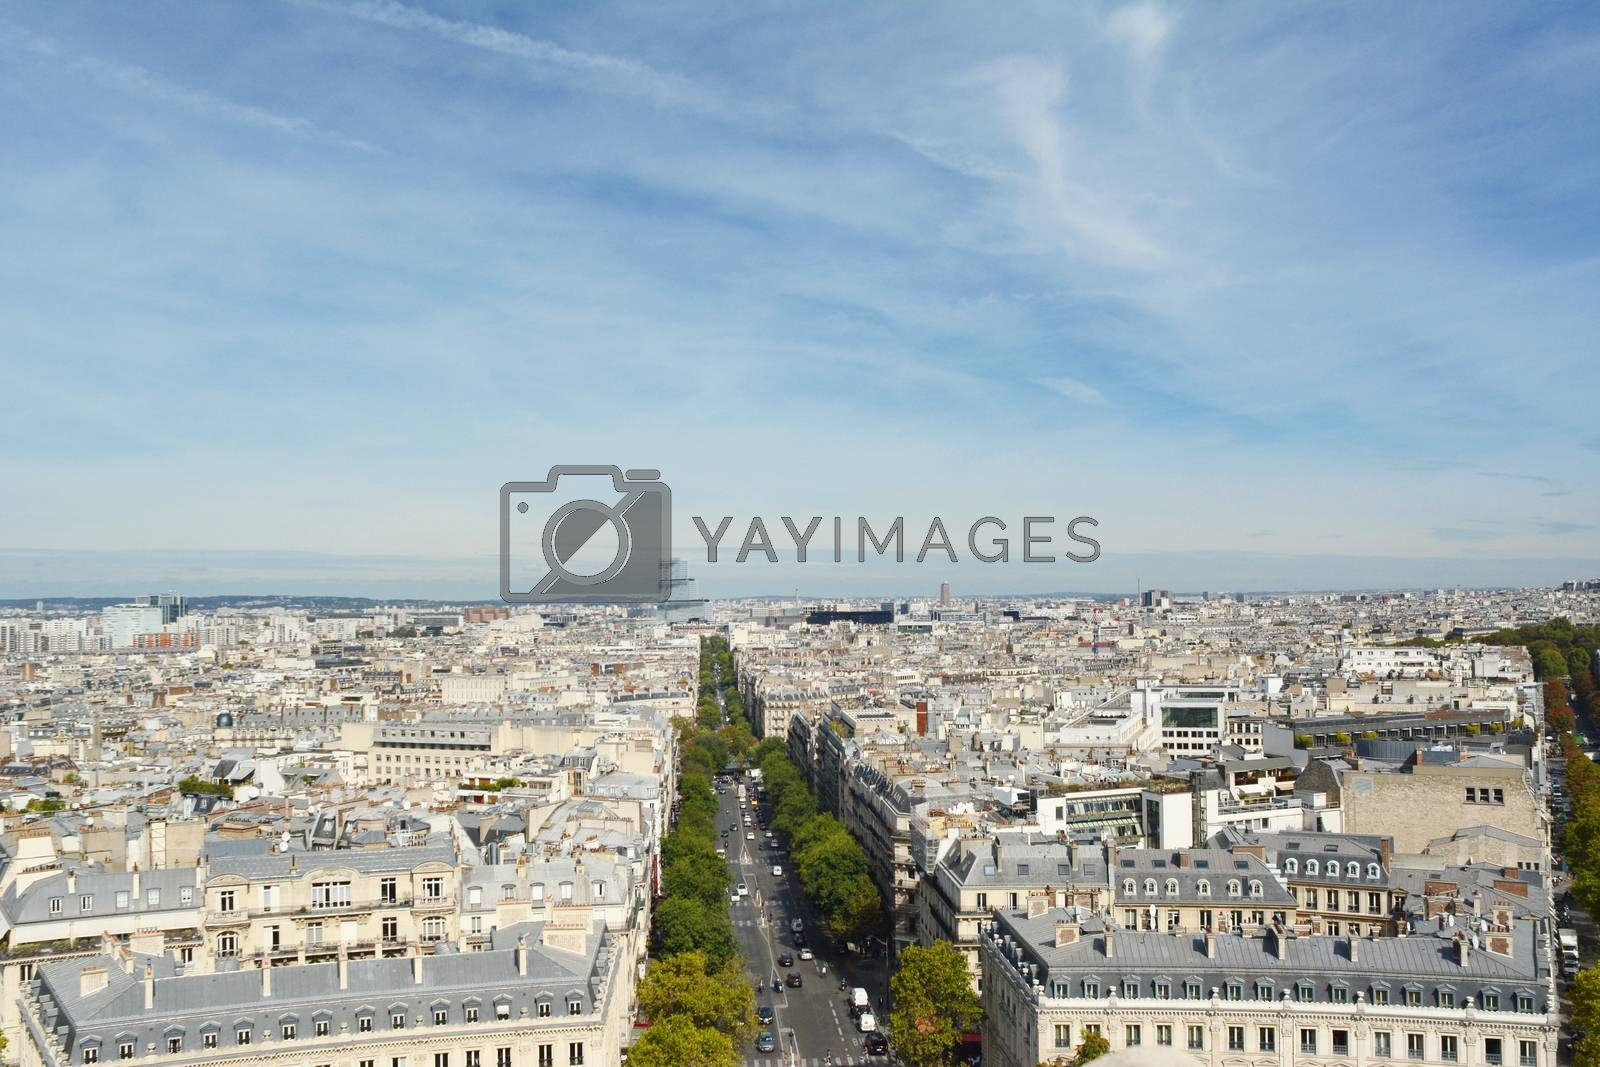 Paris cityscape from the top of the Arc de Triomphe, looking north along Avenue de Wagram. In the distance, the modern Tribunal de Paris building stands above the city.